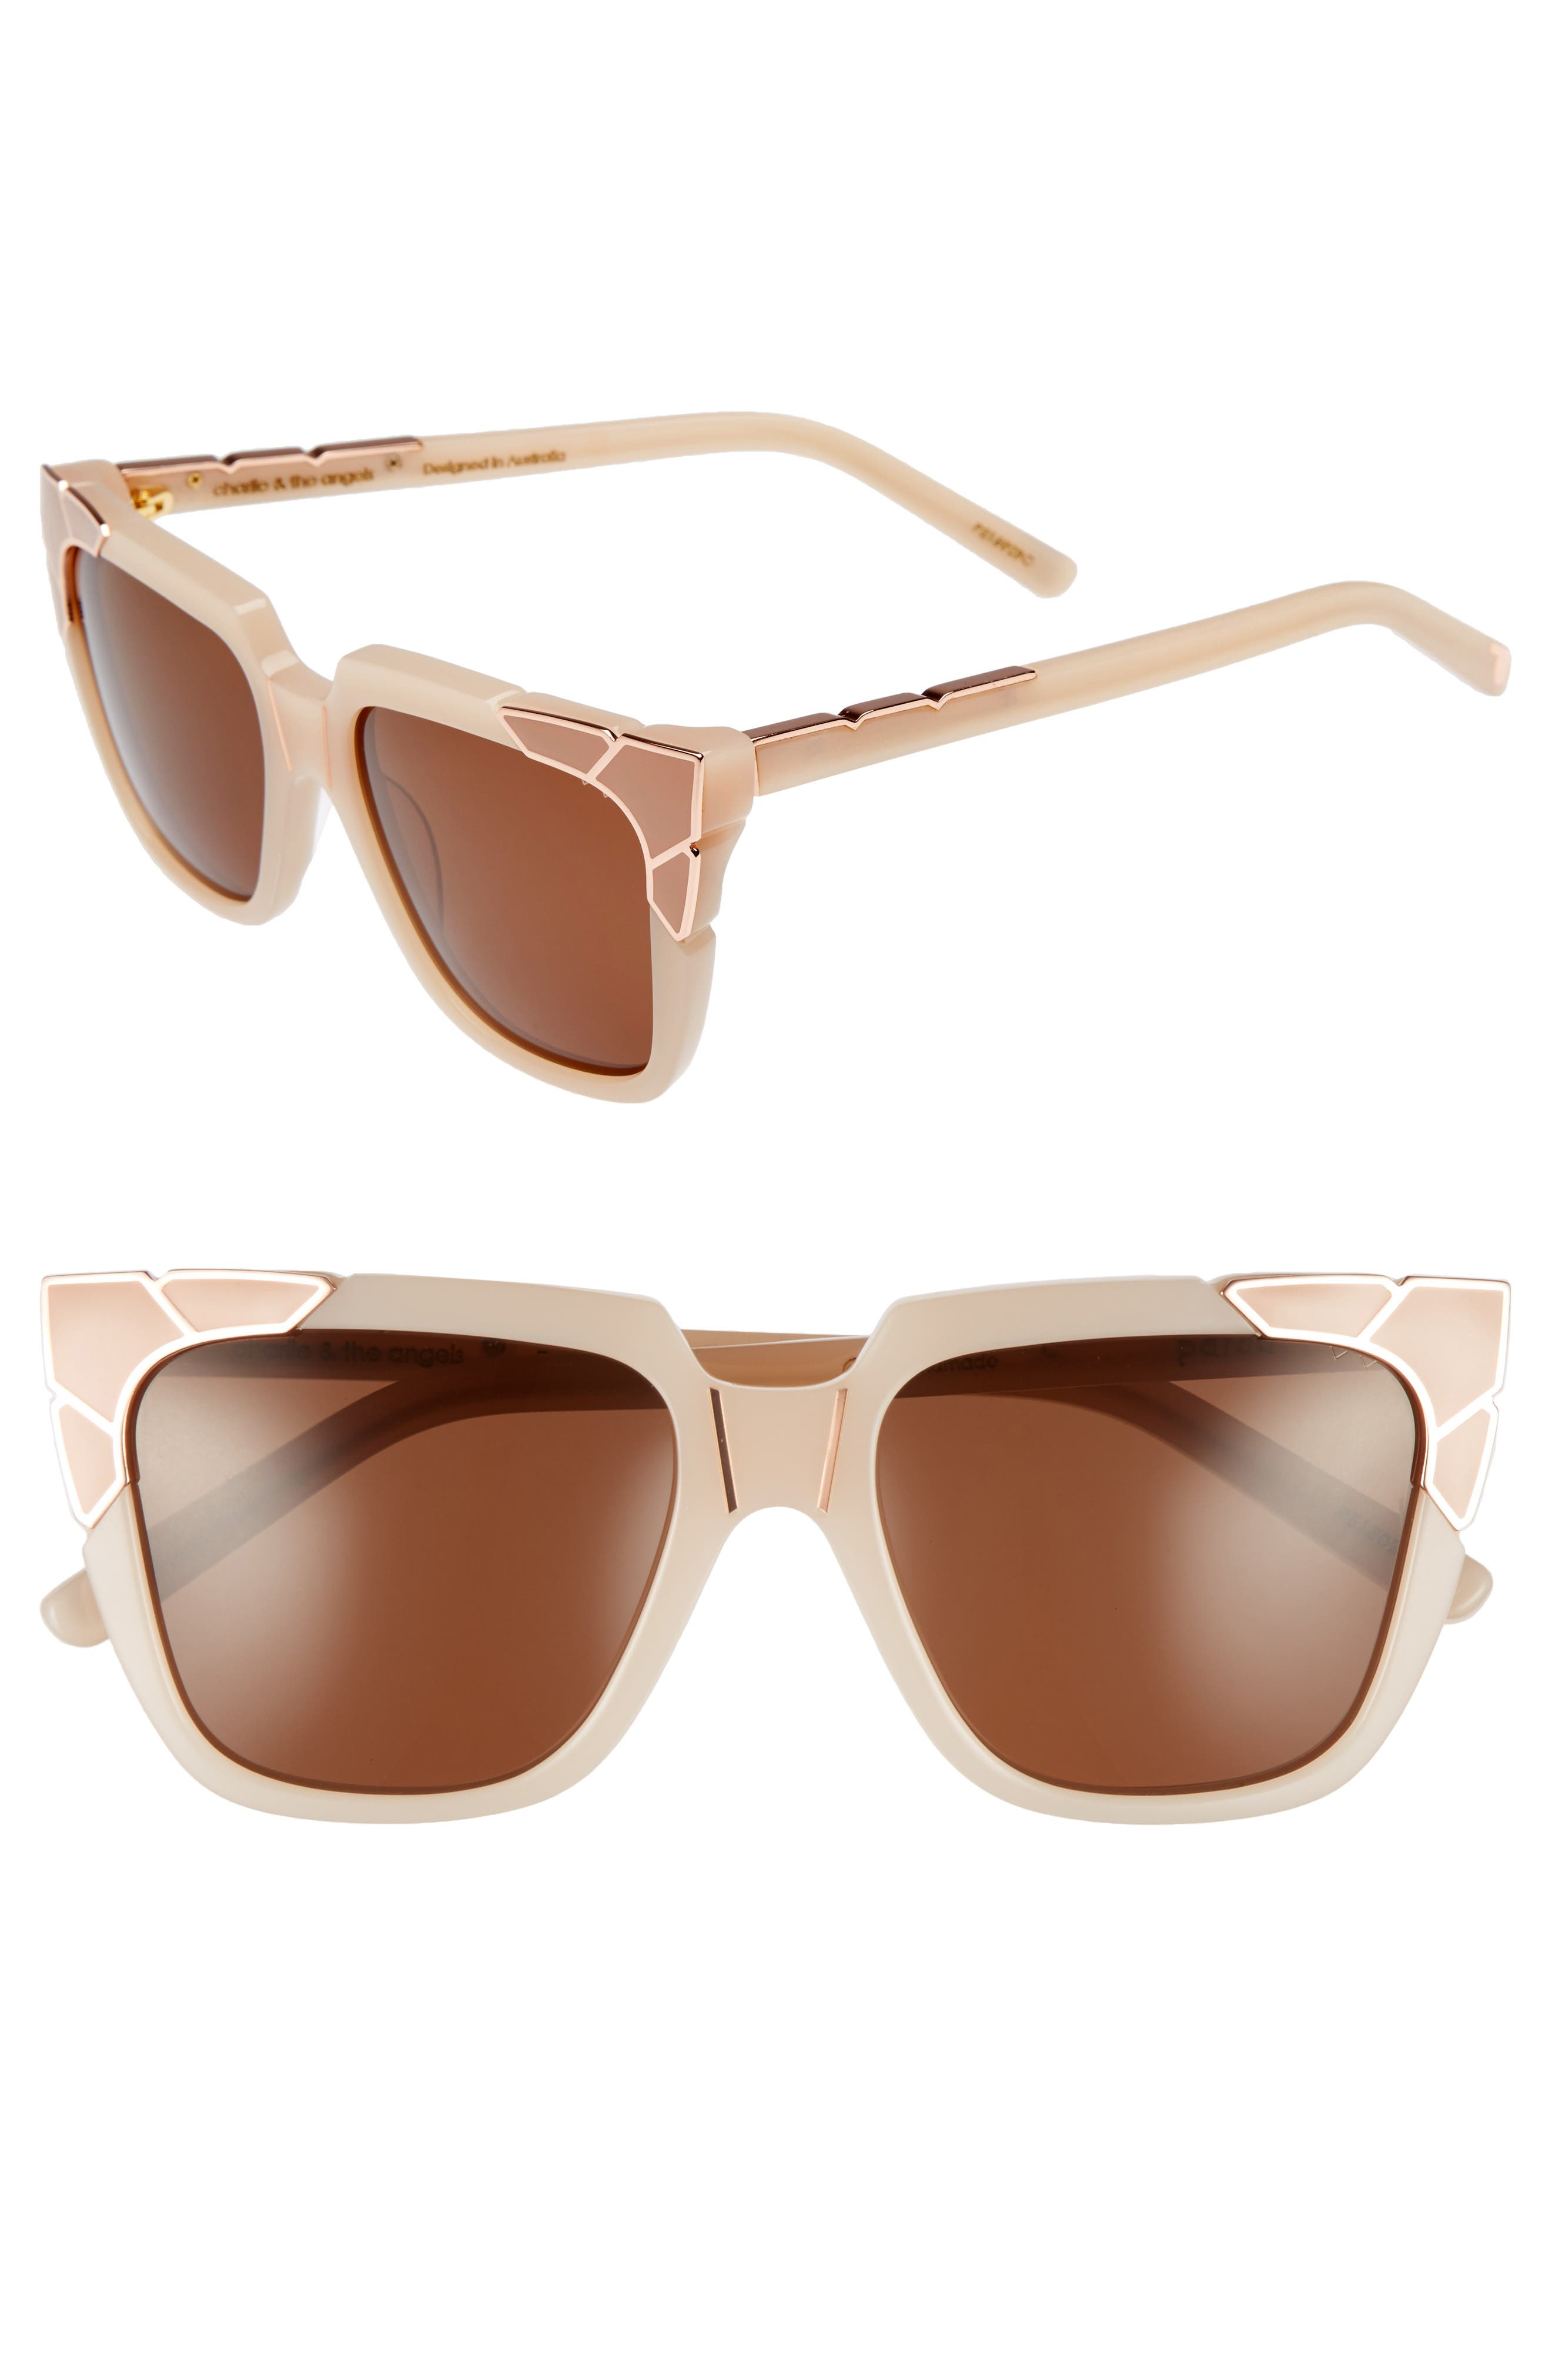 Charlie & the Angels 54mm Sunglasses,                             Main thumbnail 1, color,                             800